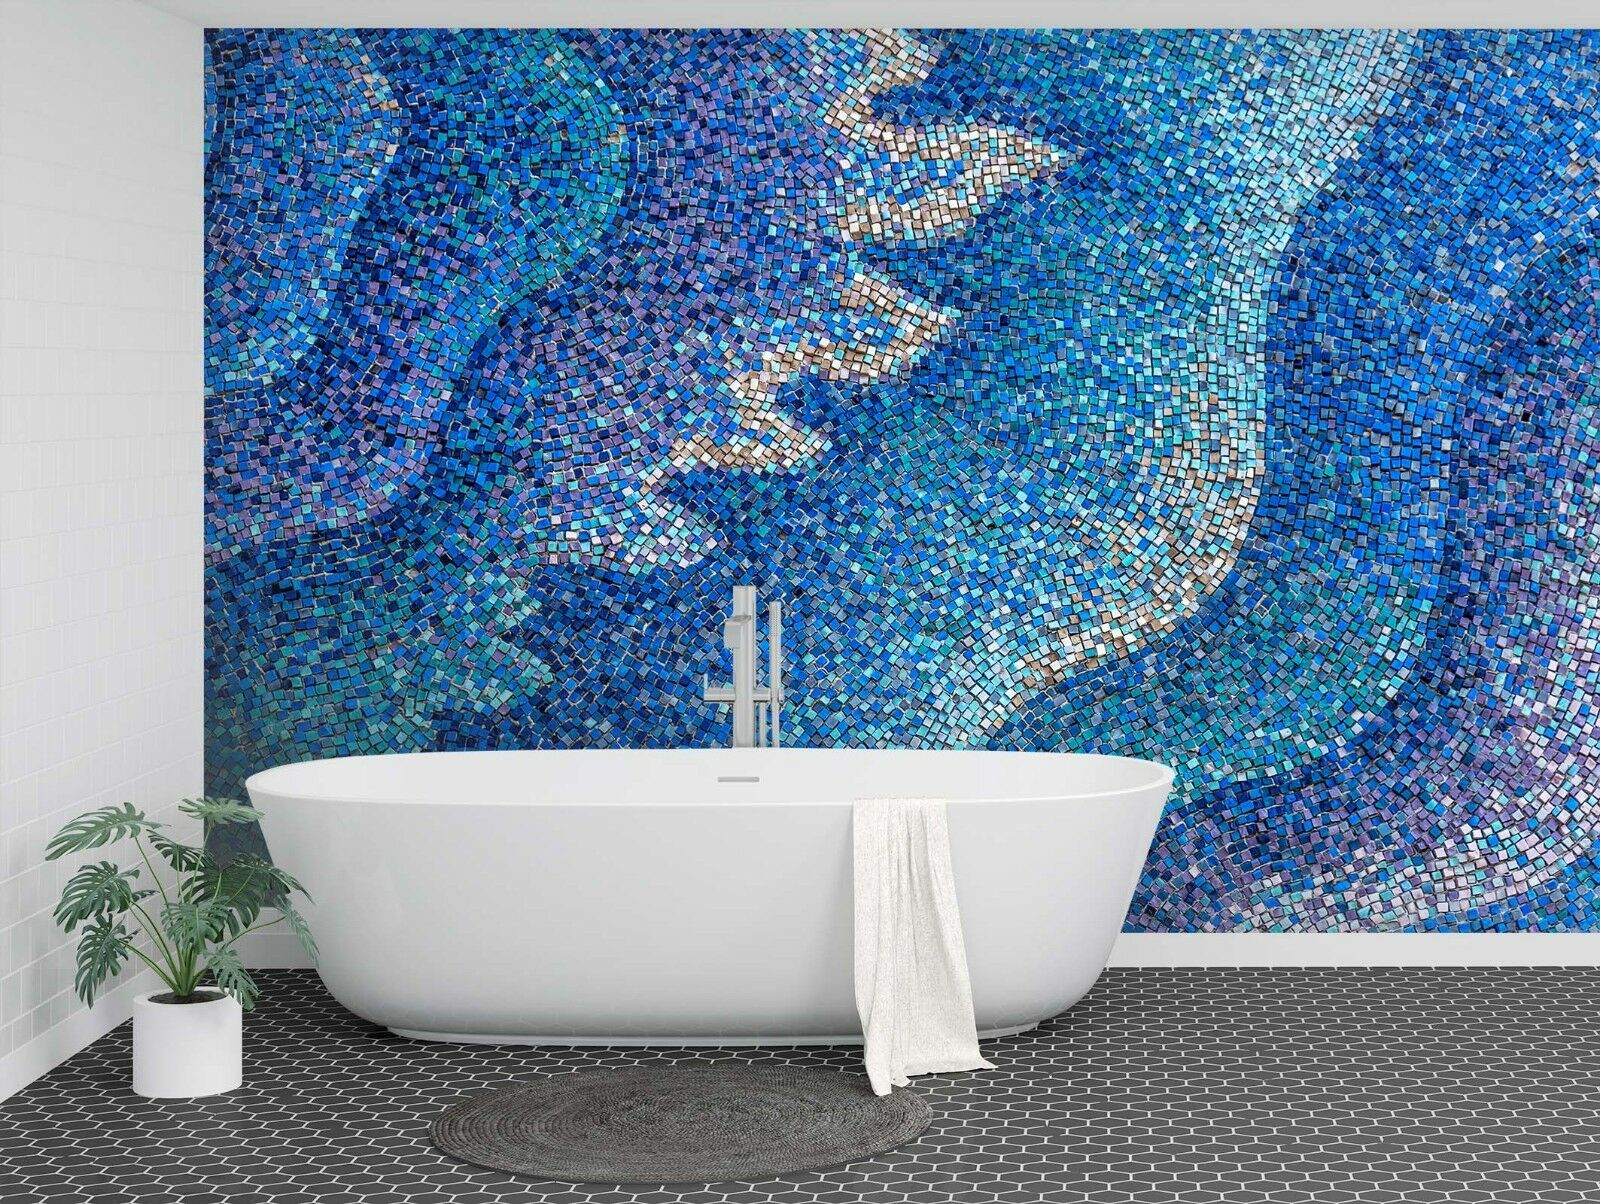 3D bluee Wave 675 Texture Tiles Marble Wall Paper Decal Wallpaper Mural AJ